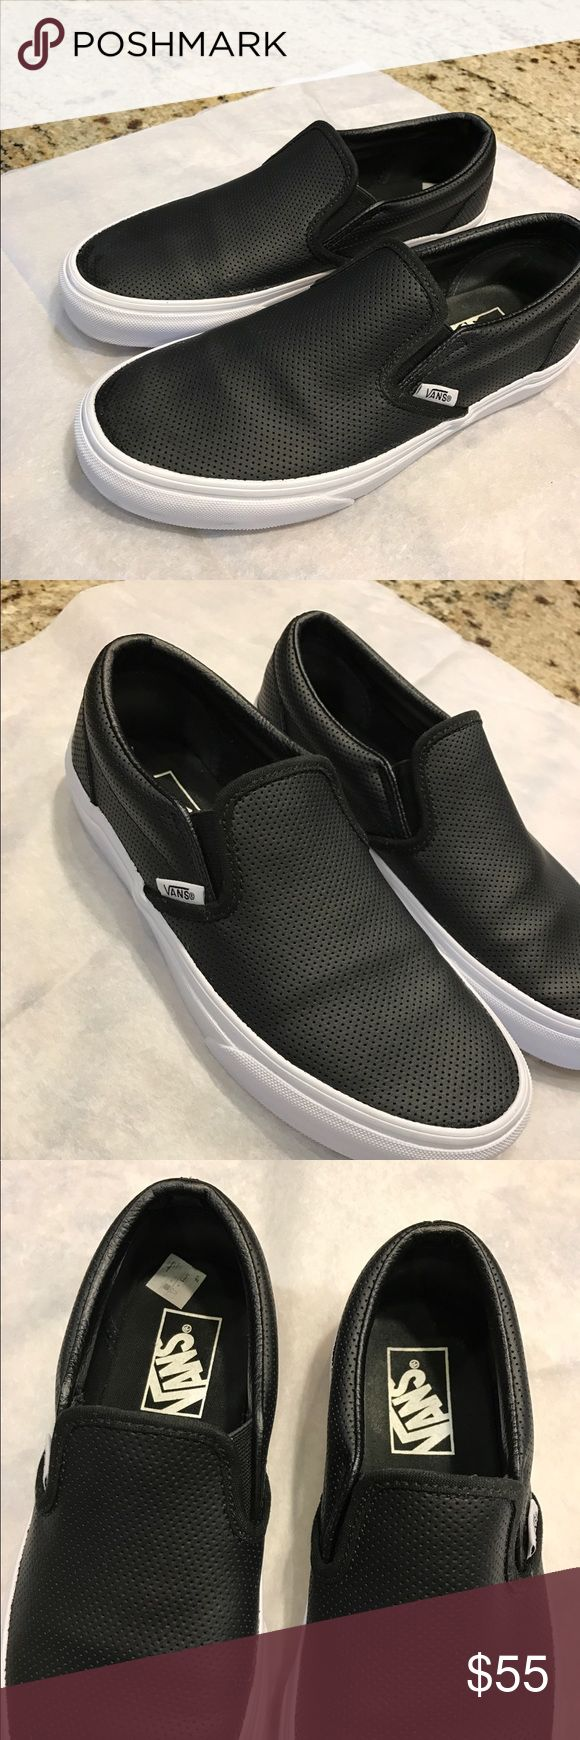 Classic sneaker vans Dual elastic goring providen a snug,comfortable fit. True to size ,sized according to women's sizes.shoe reflects men's & womens sizing . Brand new with out box . Vans Shoes Sneakers